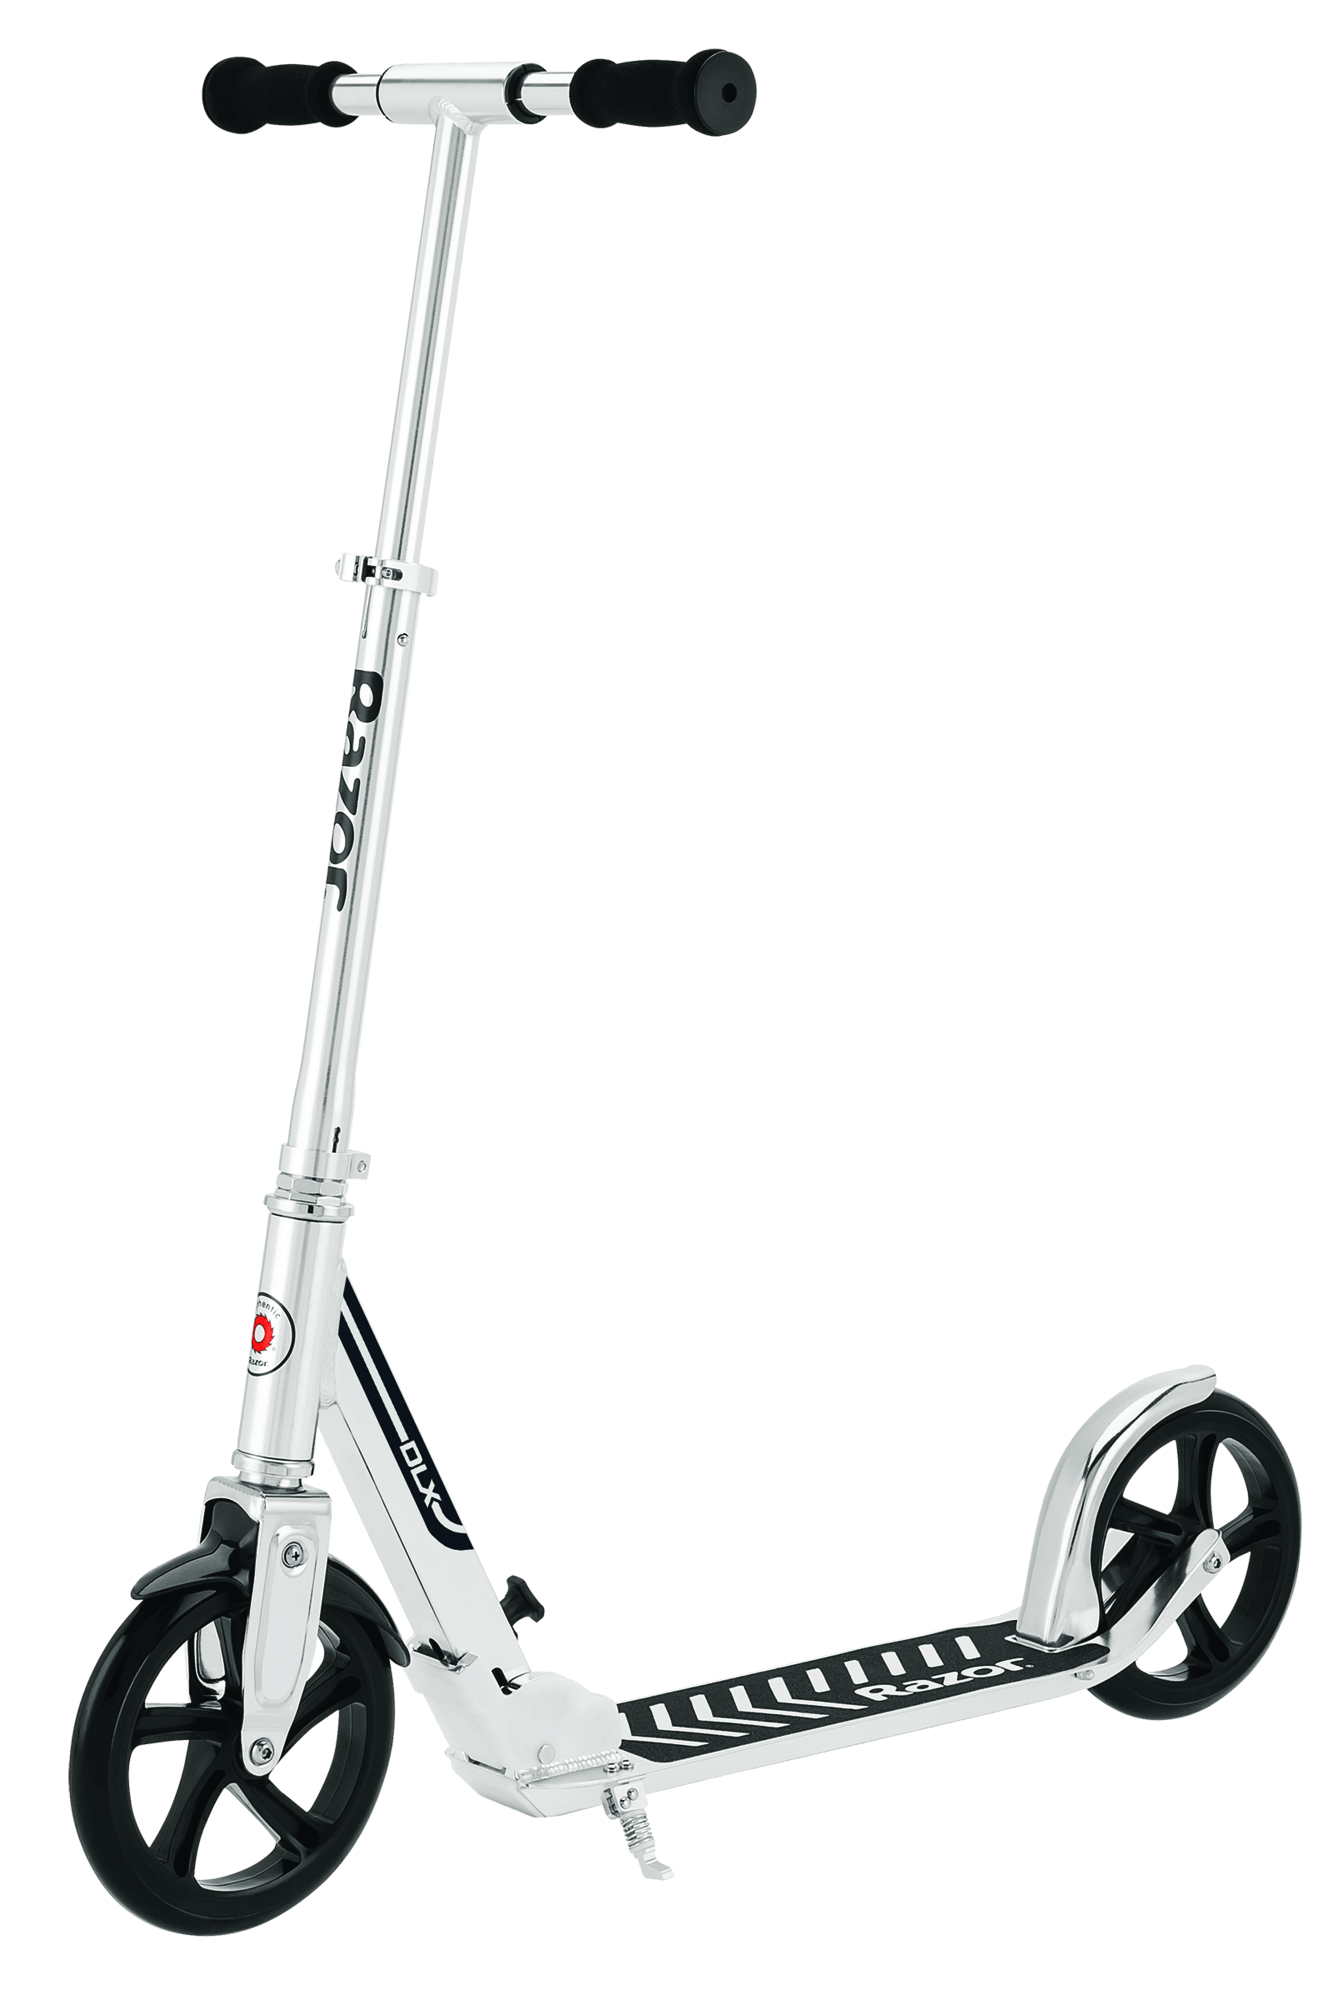 A5 DLX Scooter.